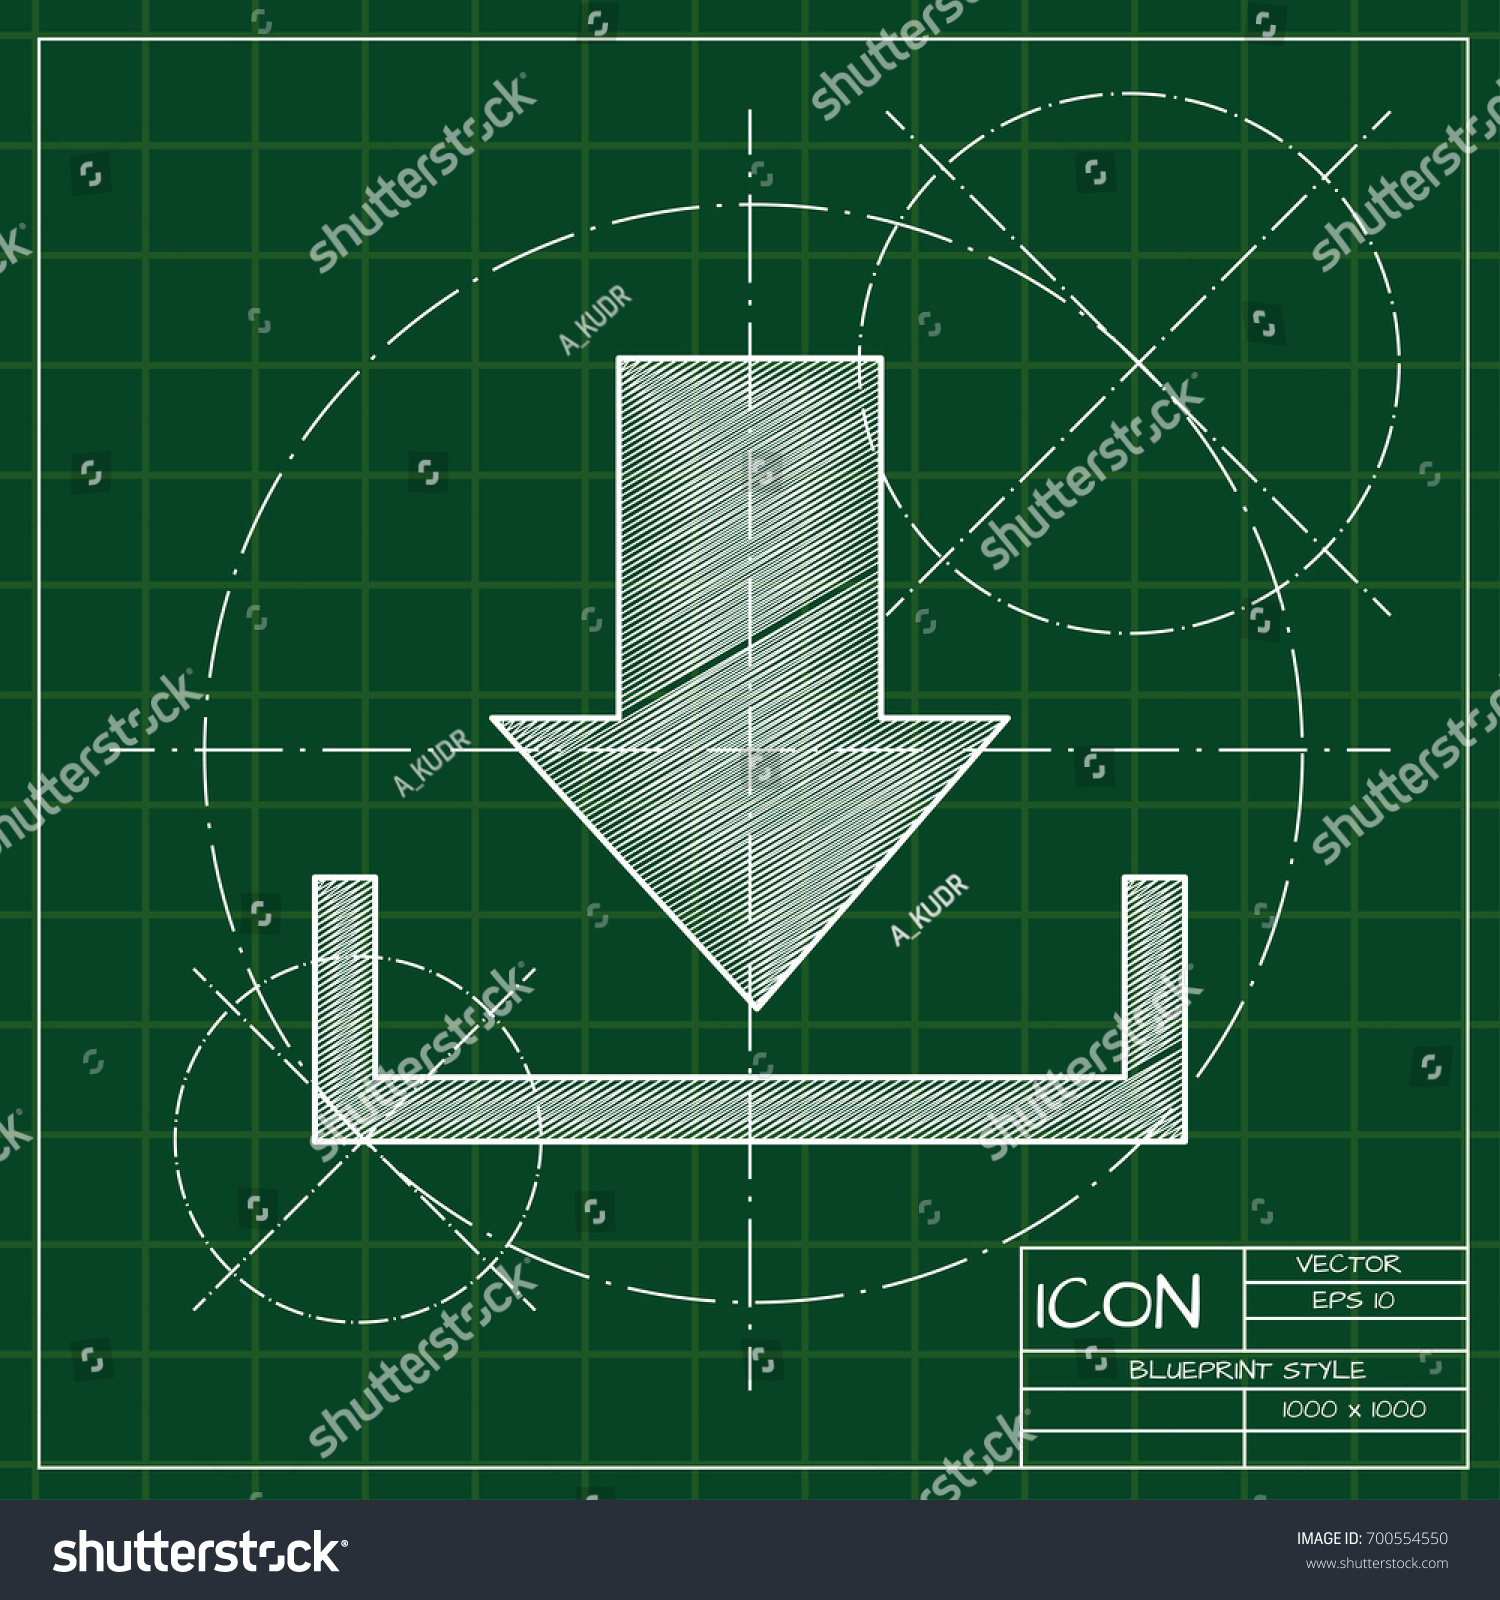 Vector blueprint download icon on engineer stock vector 700554550 vector blueprint download icon on engineer and architect background business collection malvernweather Choice Image